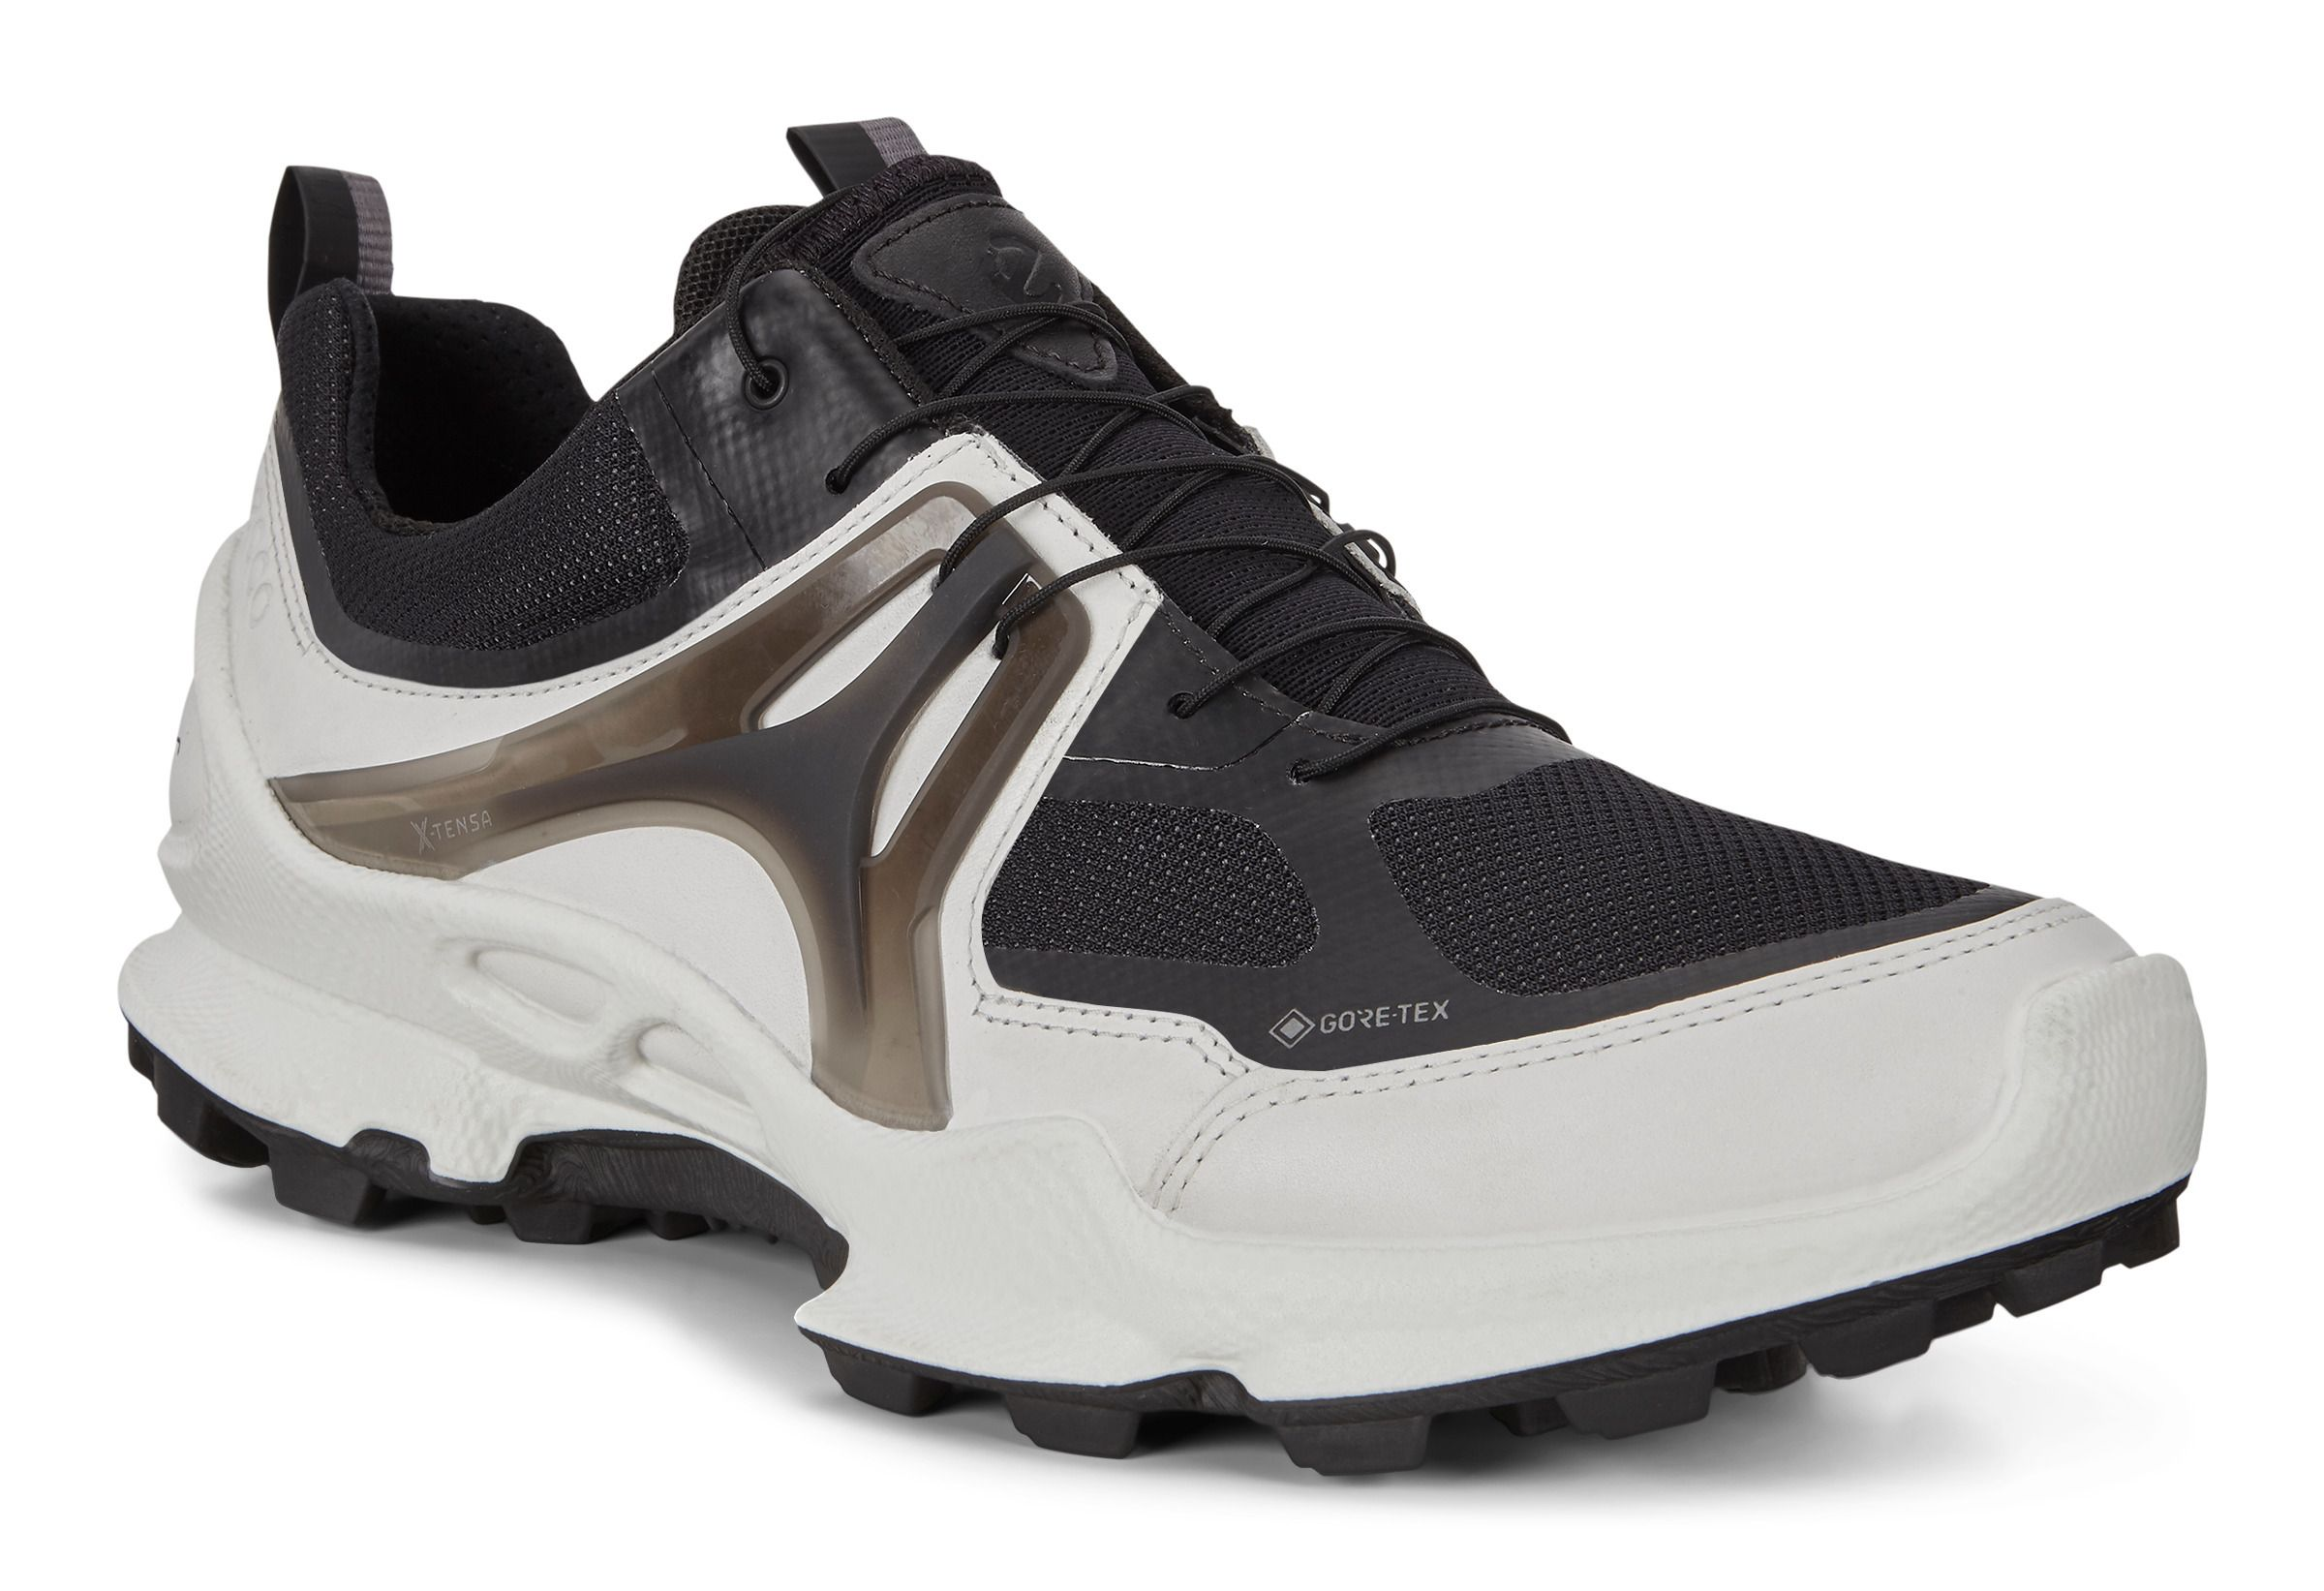 ECCO ECCO shoes spring and summer sports shoes women shoes